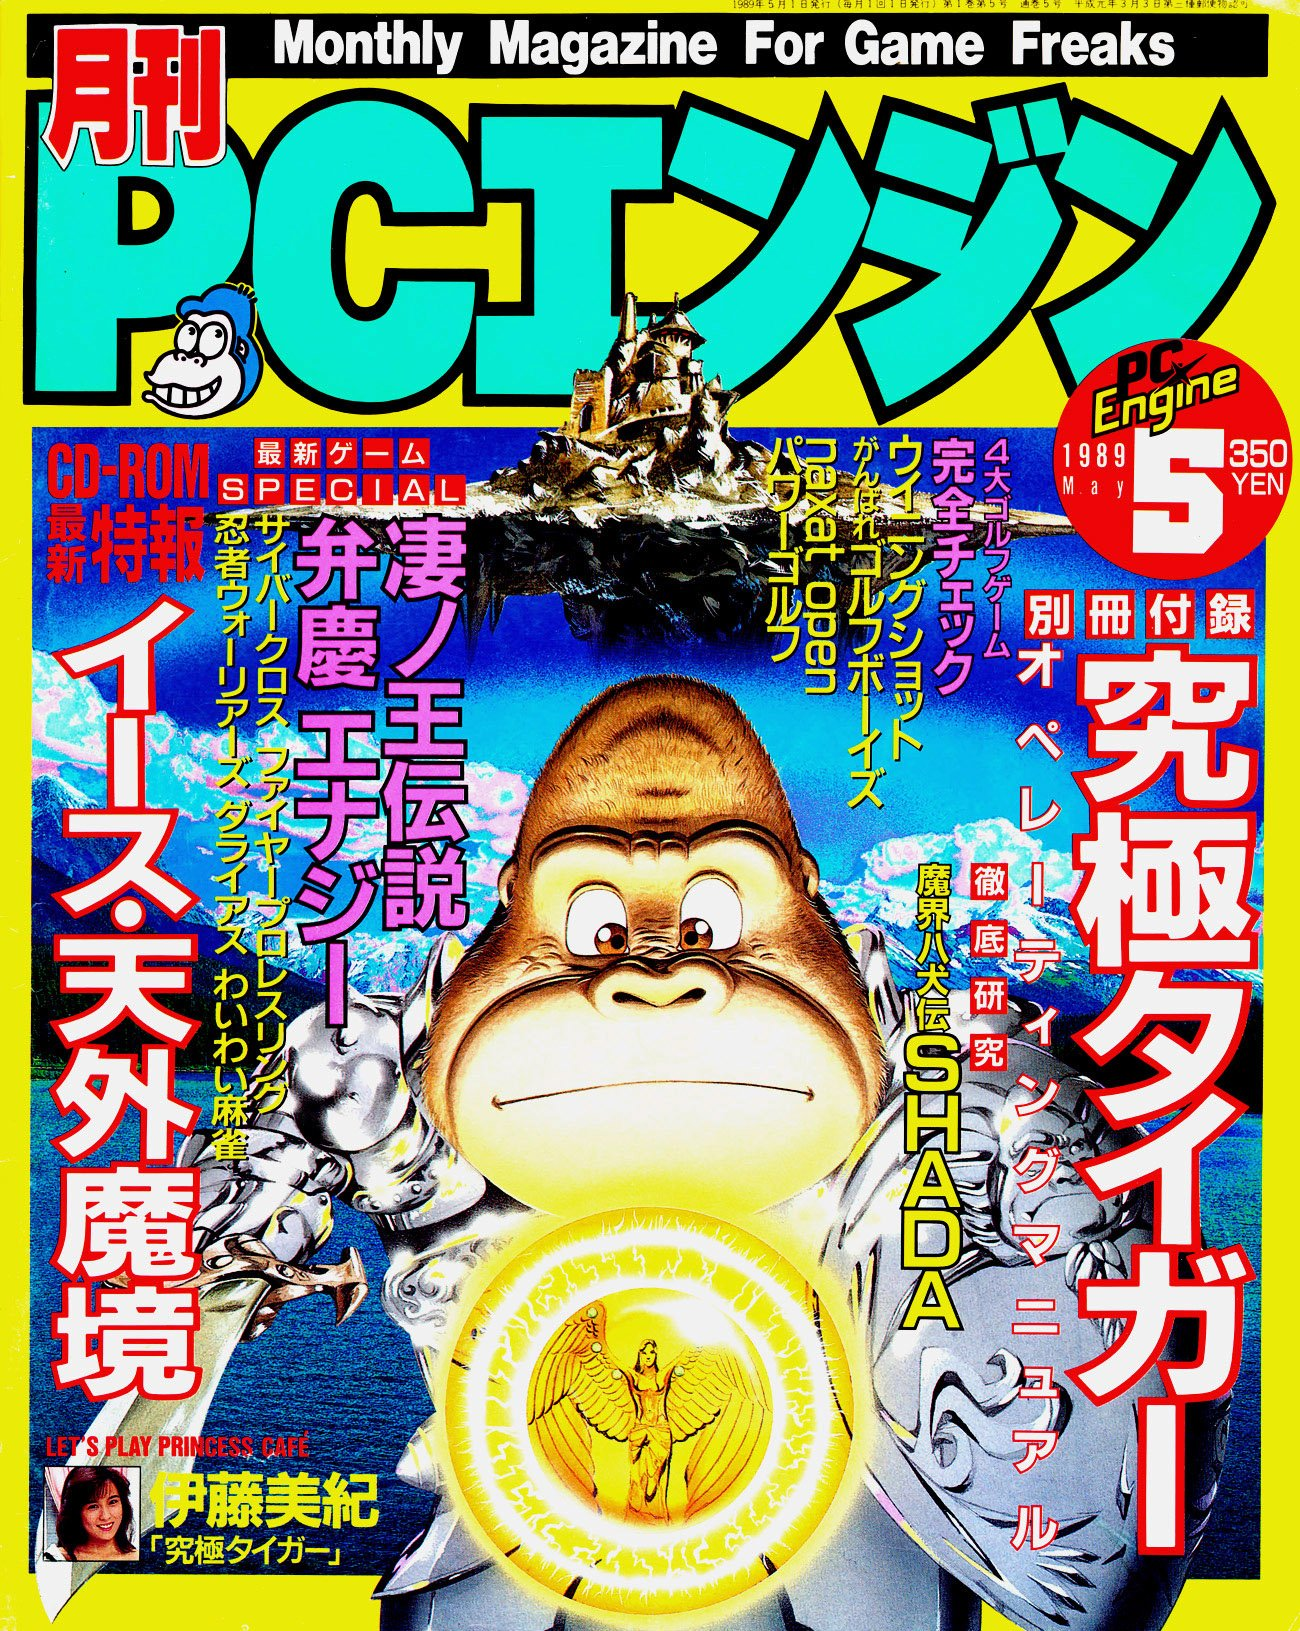 Gekkan PC Engine Issue 05 (May 1989)